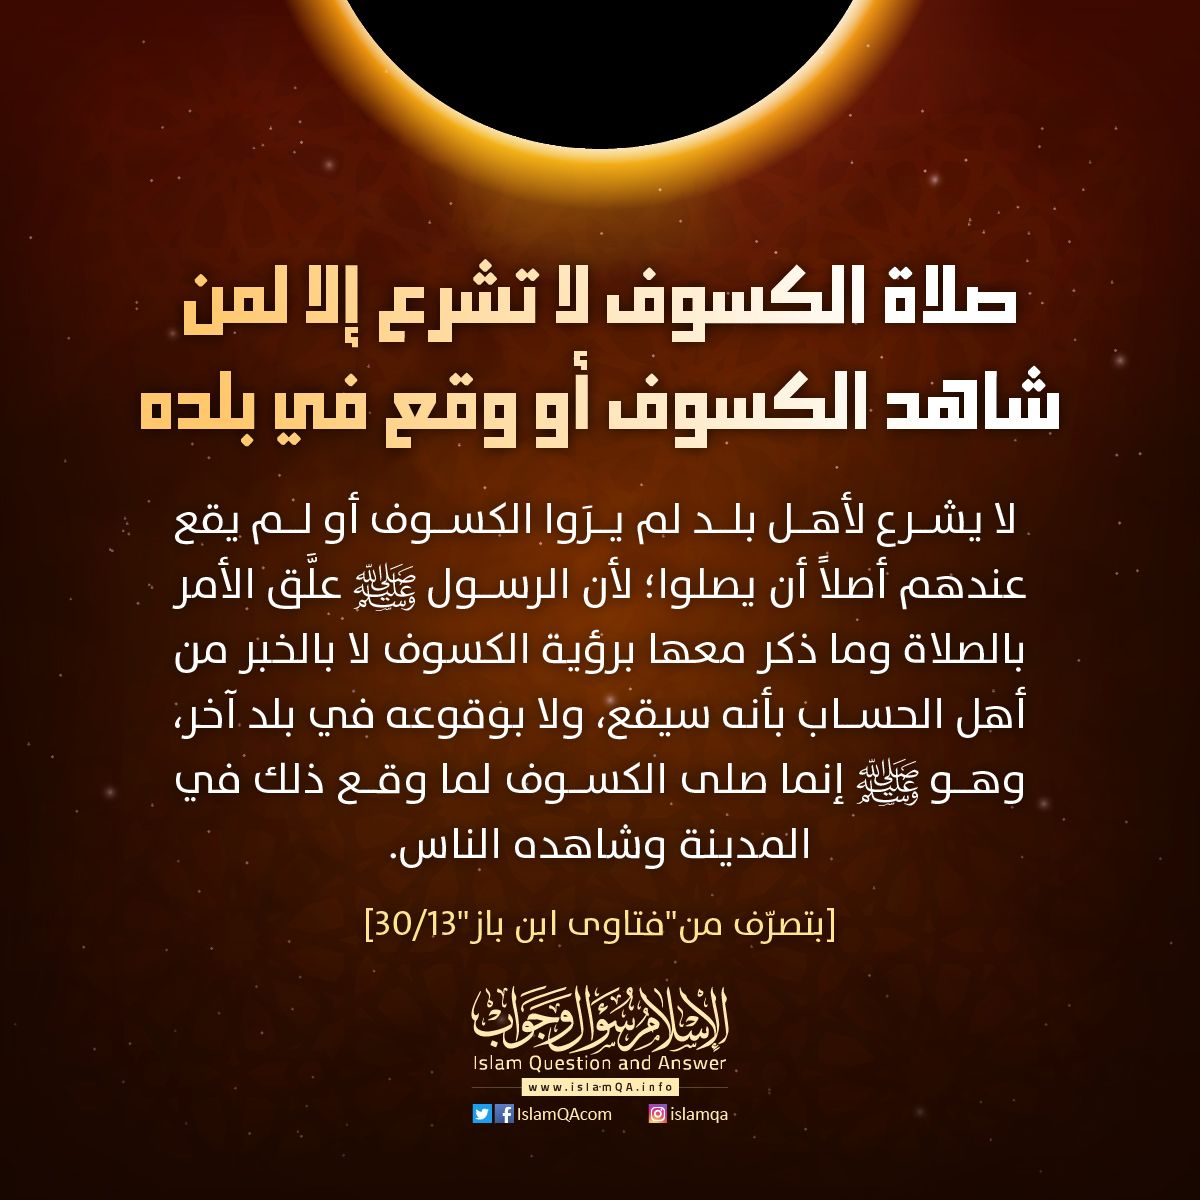 A I Oµu O O C O U Uƒo Uˆu U O Oªo O O O U O U U U O O U O O U Uƒo Uˆu O Uˆ Uˆu O U Us O U O U Https Islamqa This Or That Questions Answers Islam